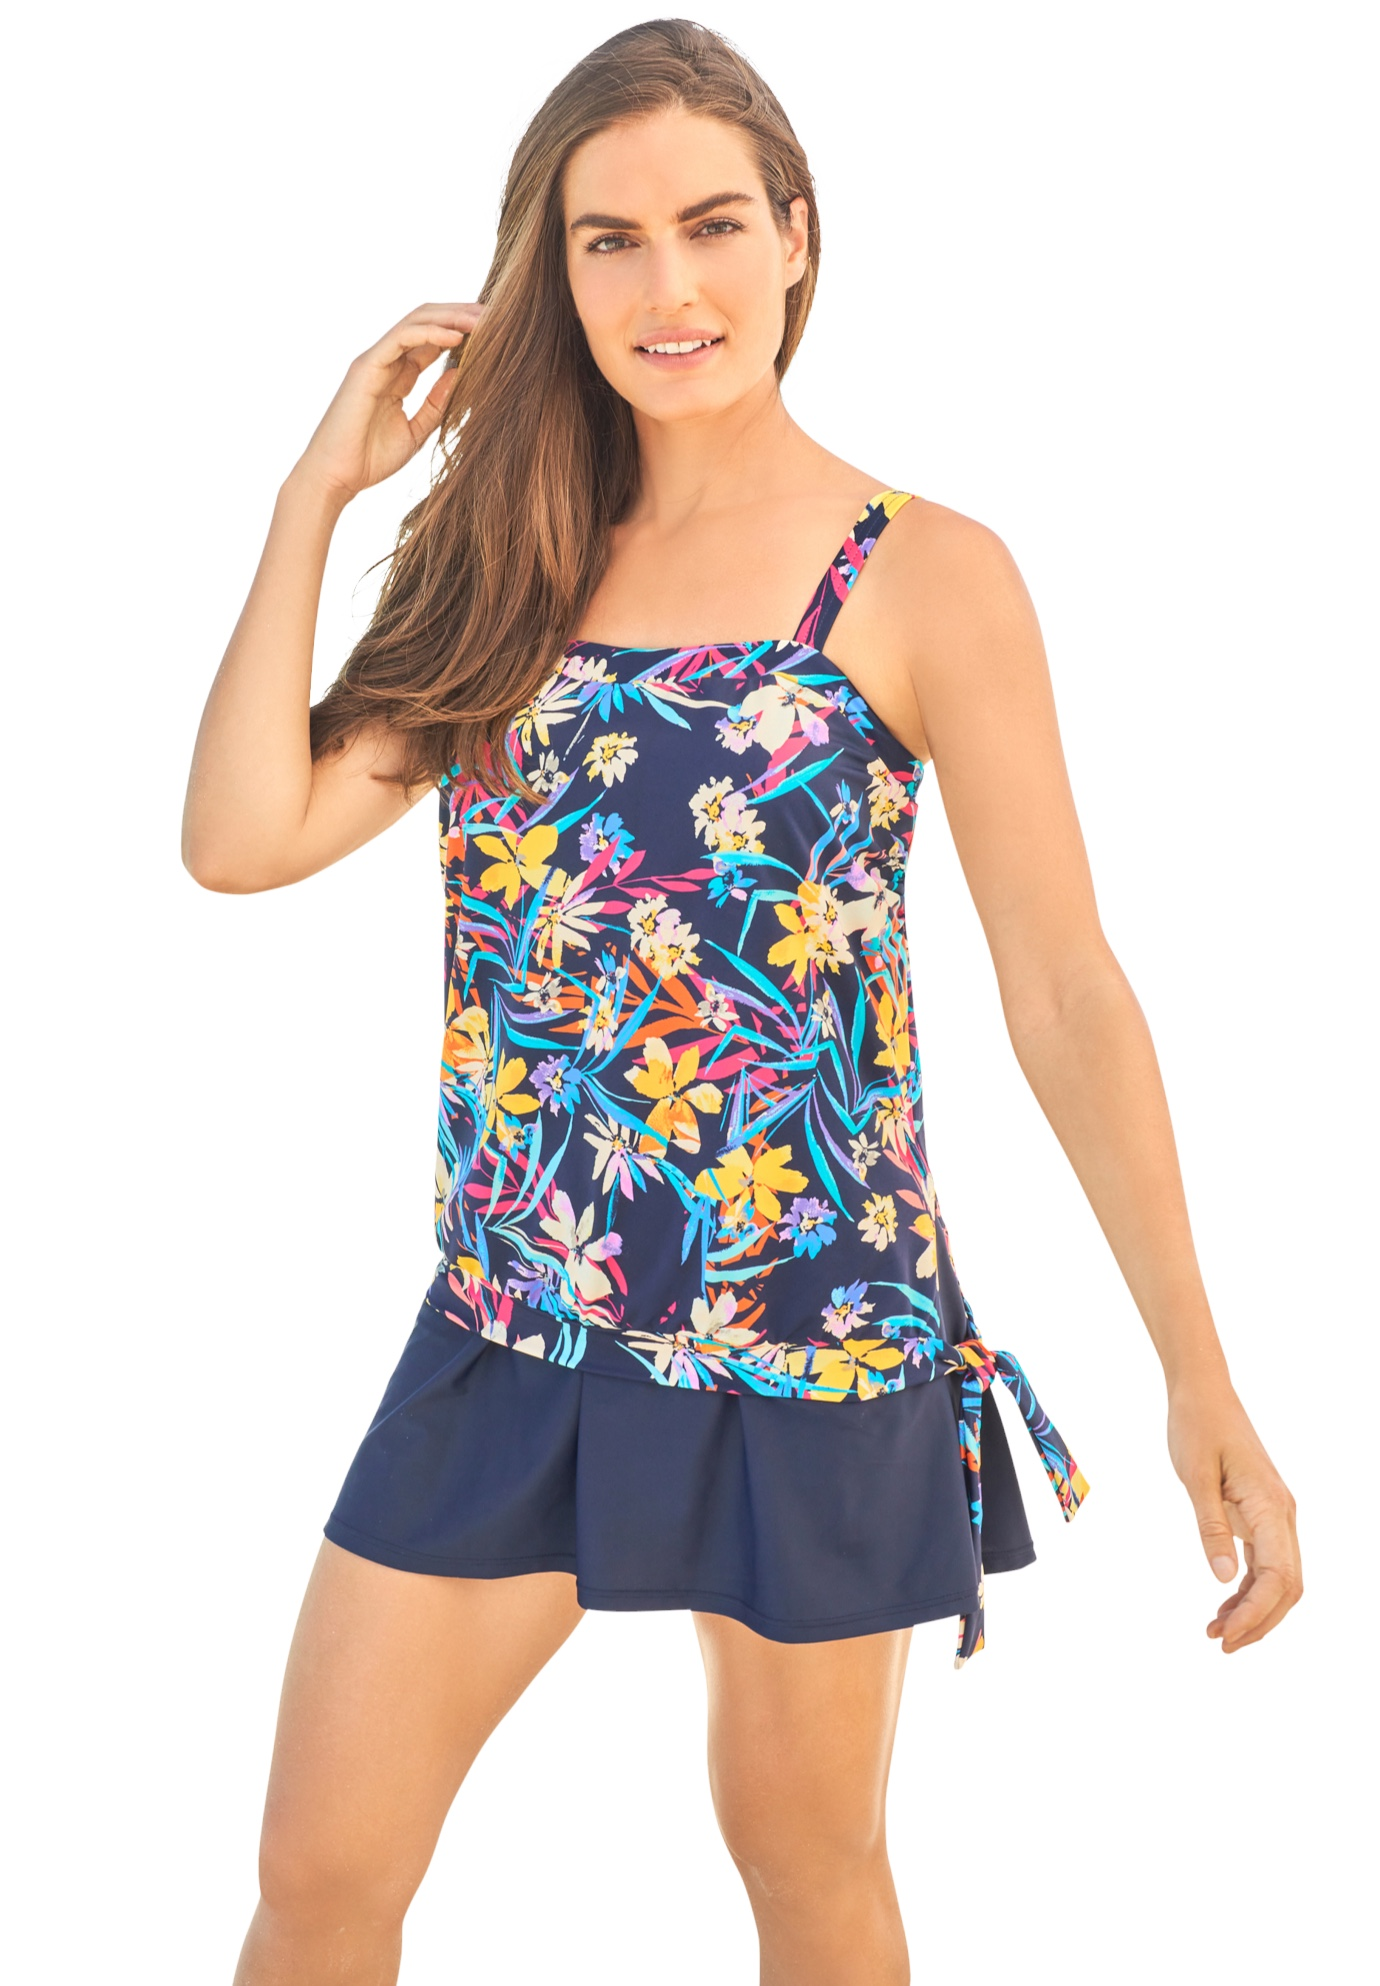 Plus Size Women's Blouson Tankini Top with Adjustable Straps by Swim 365 in Navy Tropical Garden